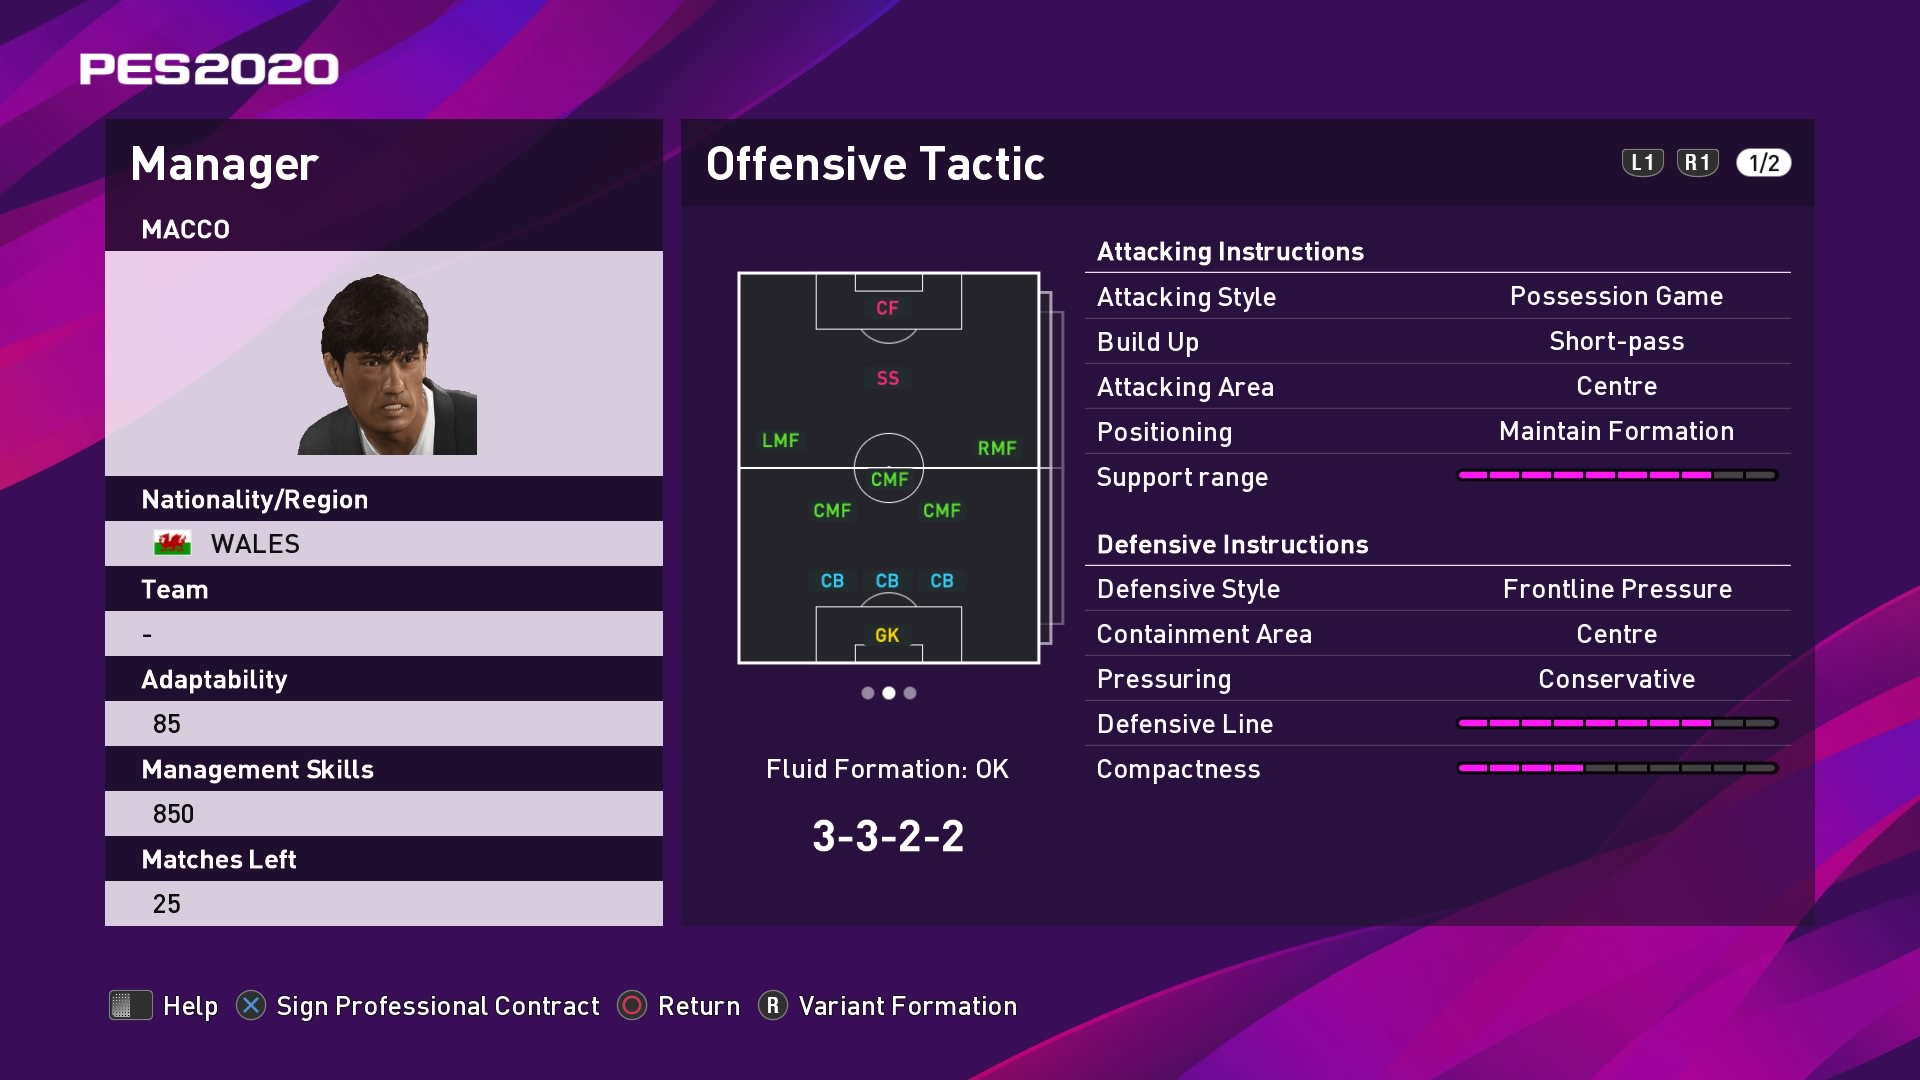 Macco Offensive Tactic when in possession